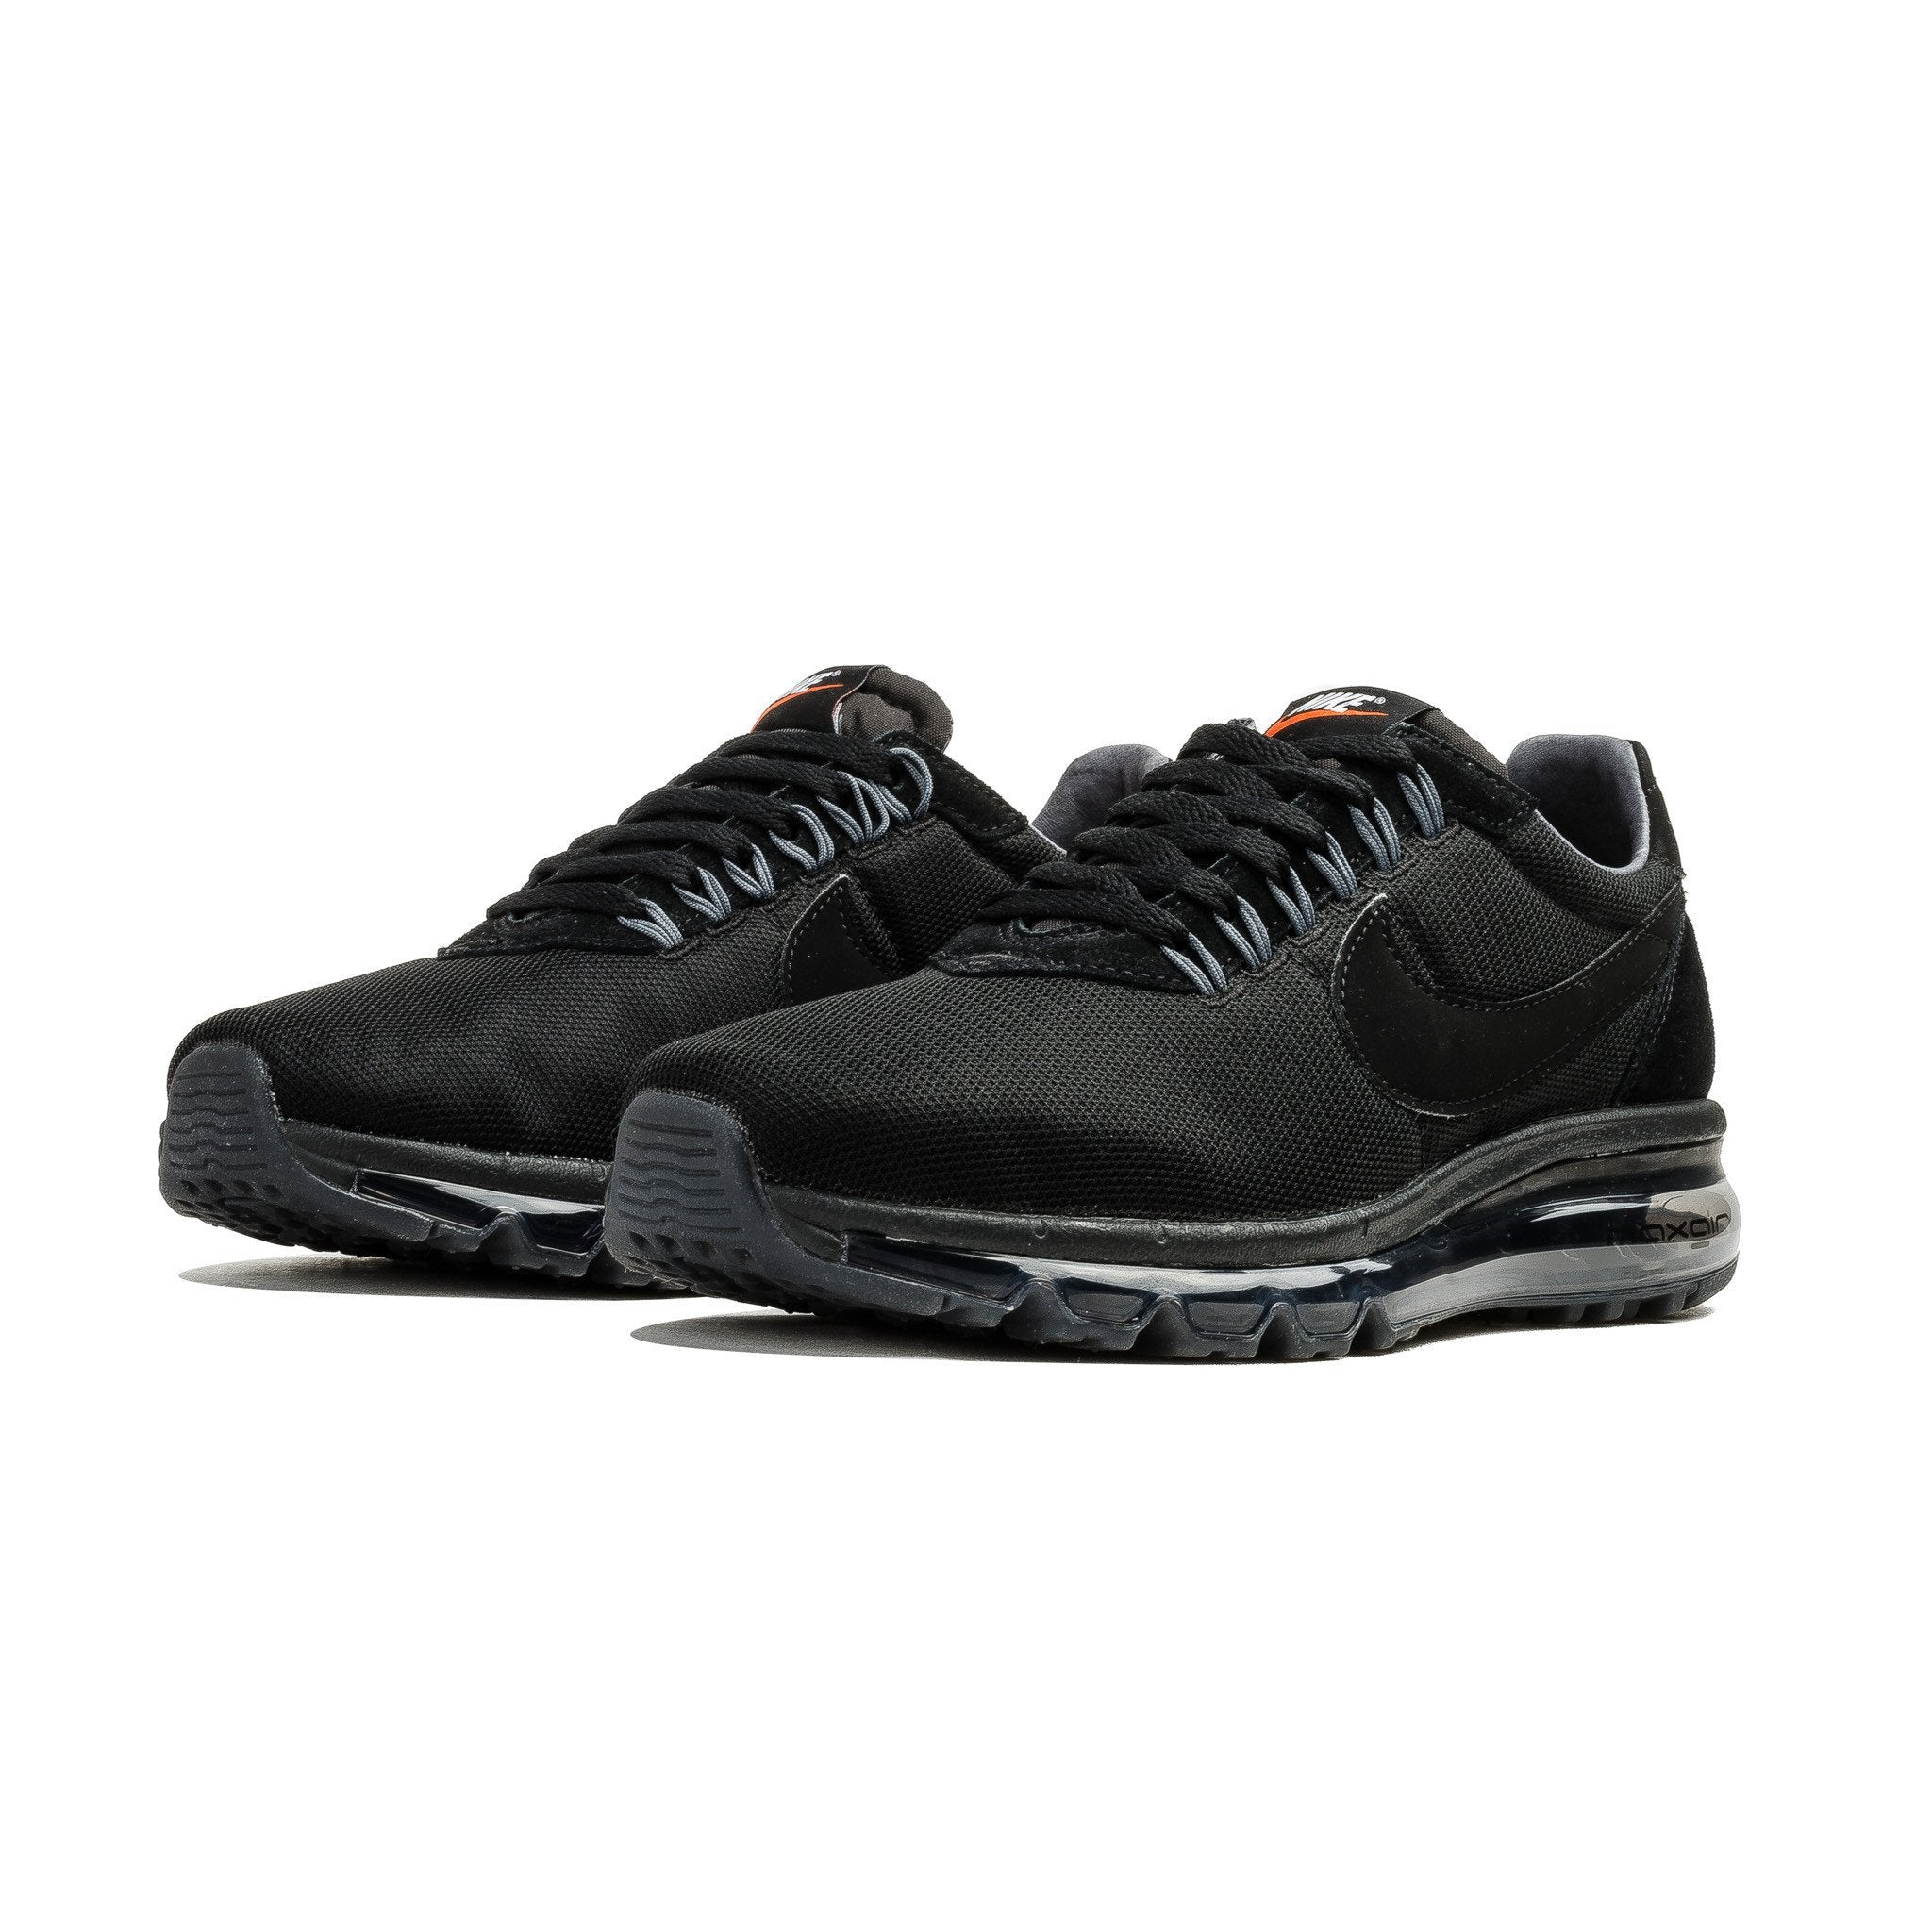 Air Max LD-Zero 848624-005 Black